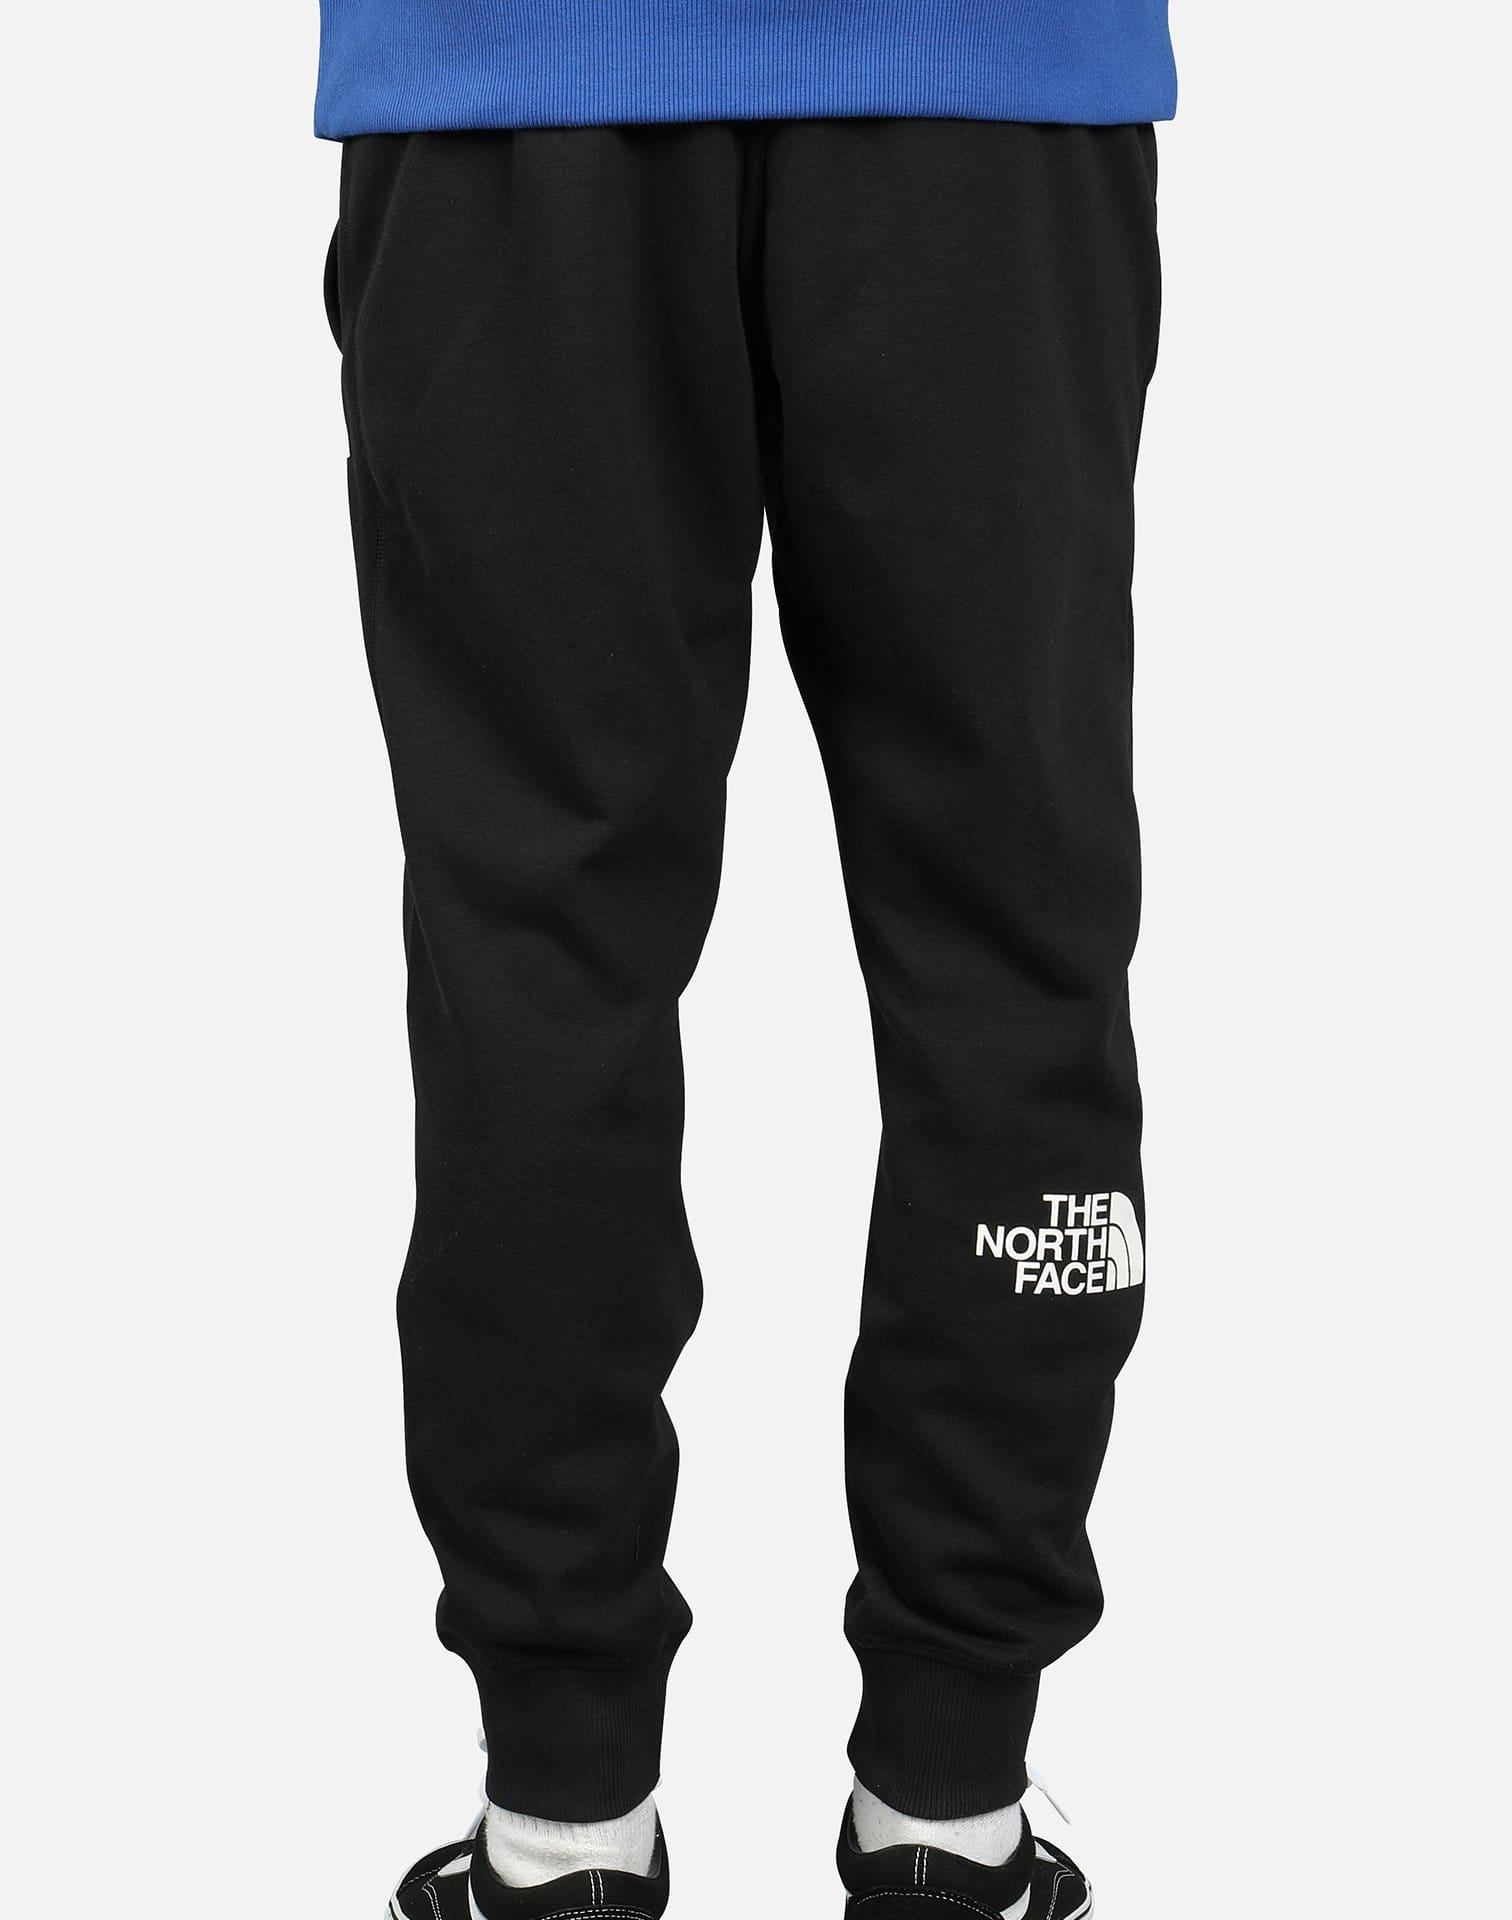 The North Face Men's Drew Peak Jogger Pants